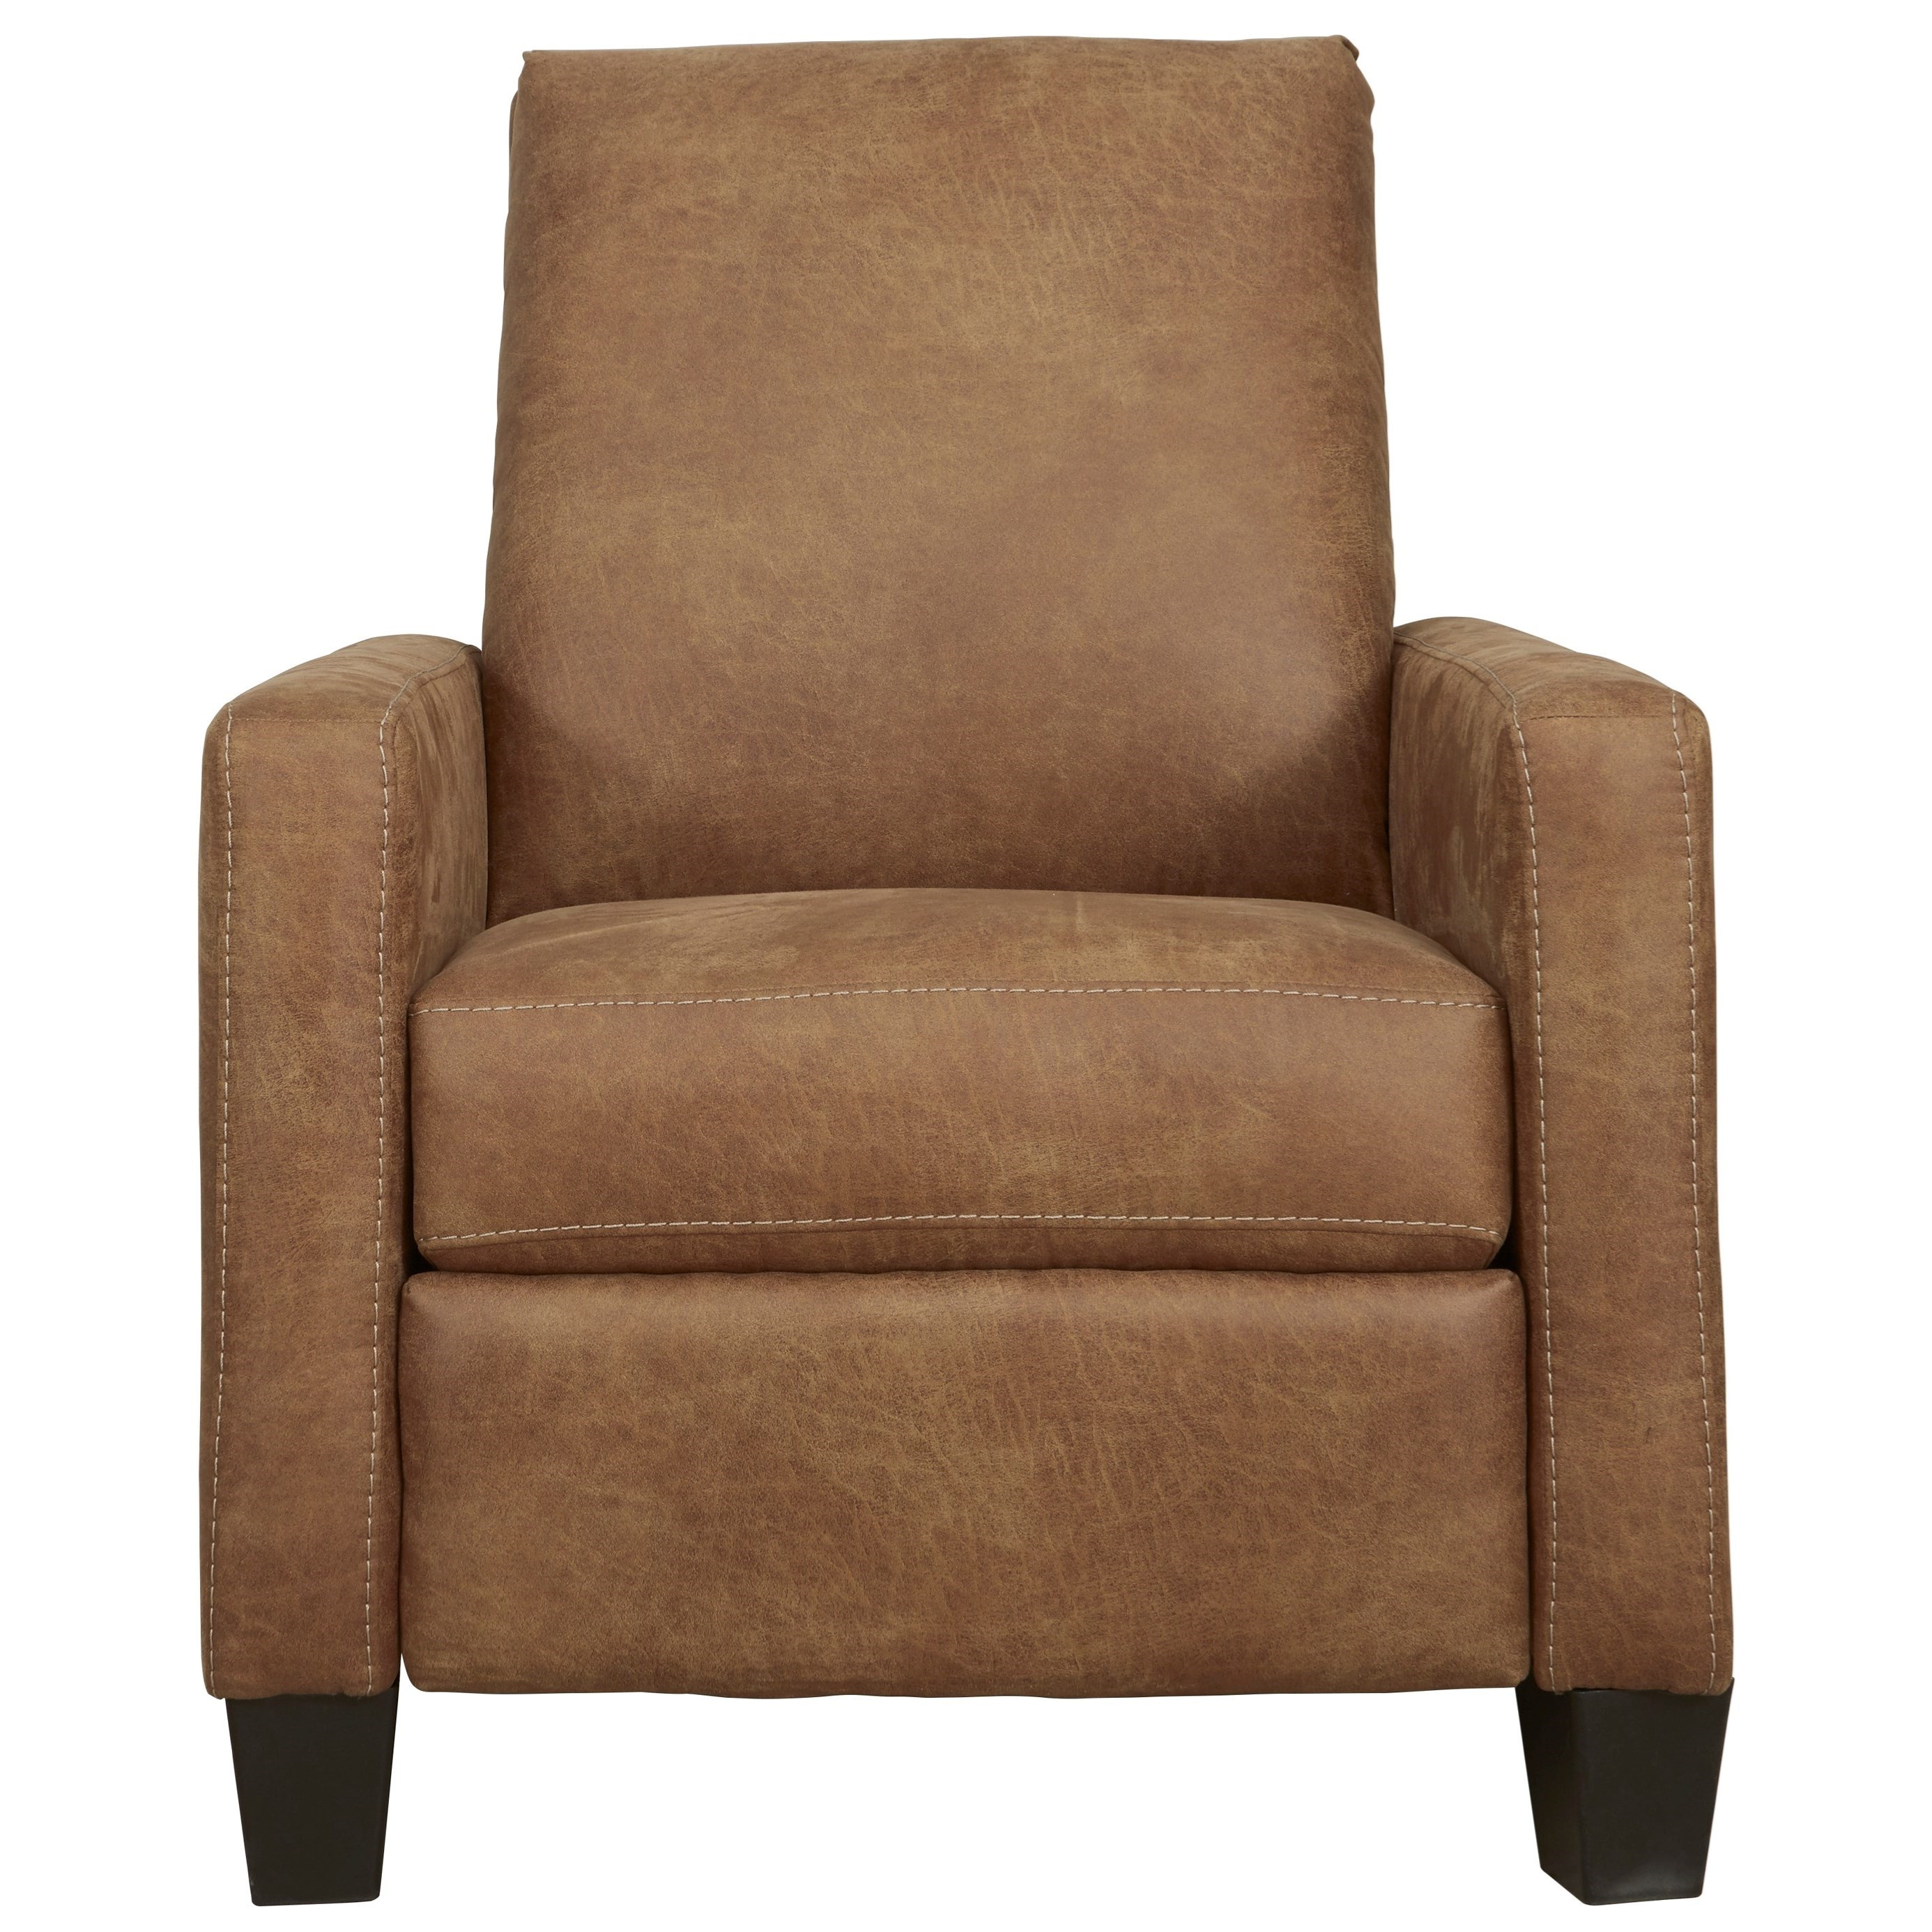 Dattner Low Leg Recliner by Signature Design by Ashley at Northeast Factory Direct